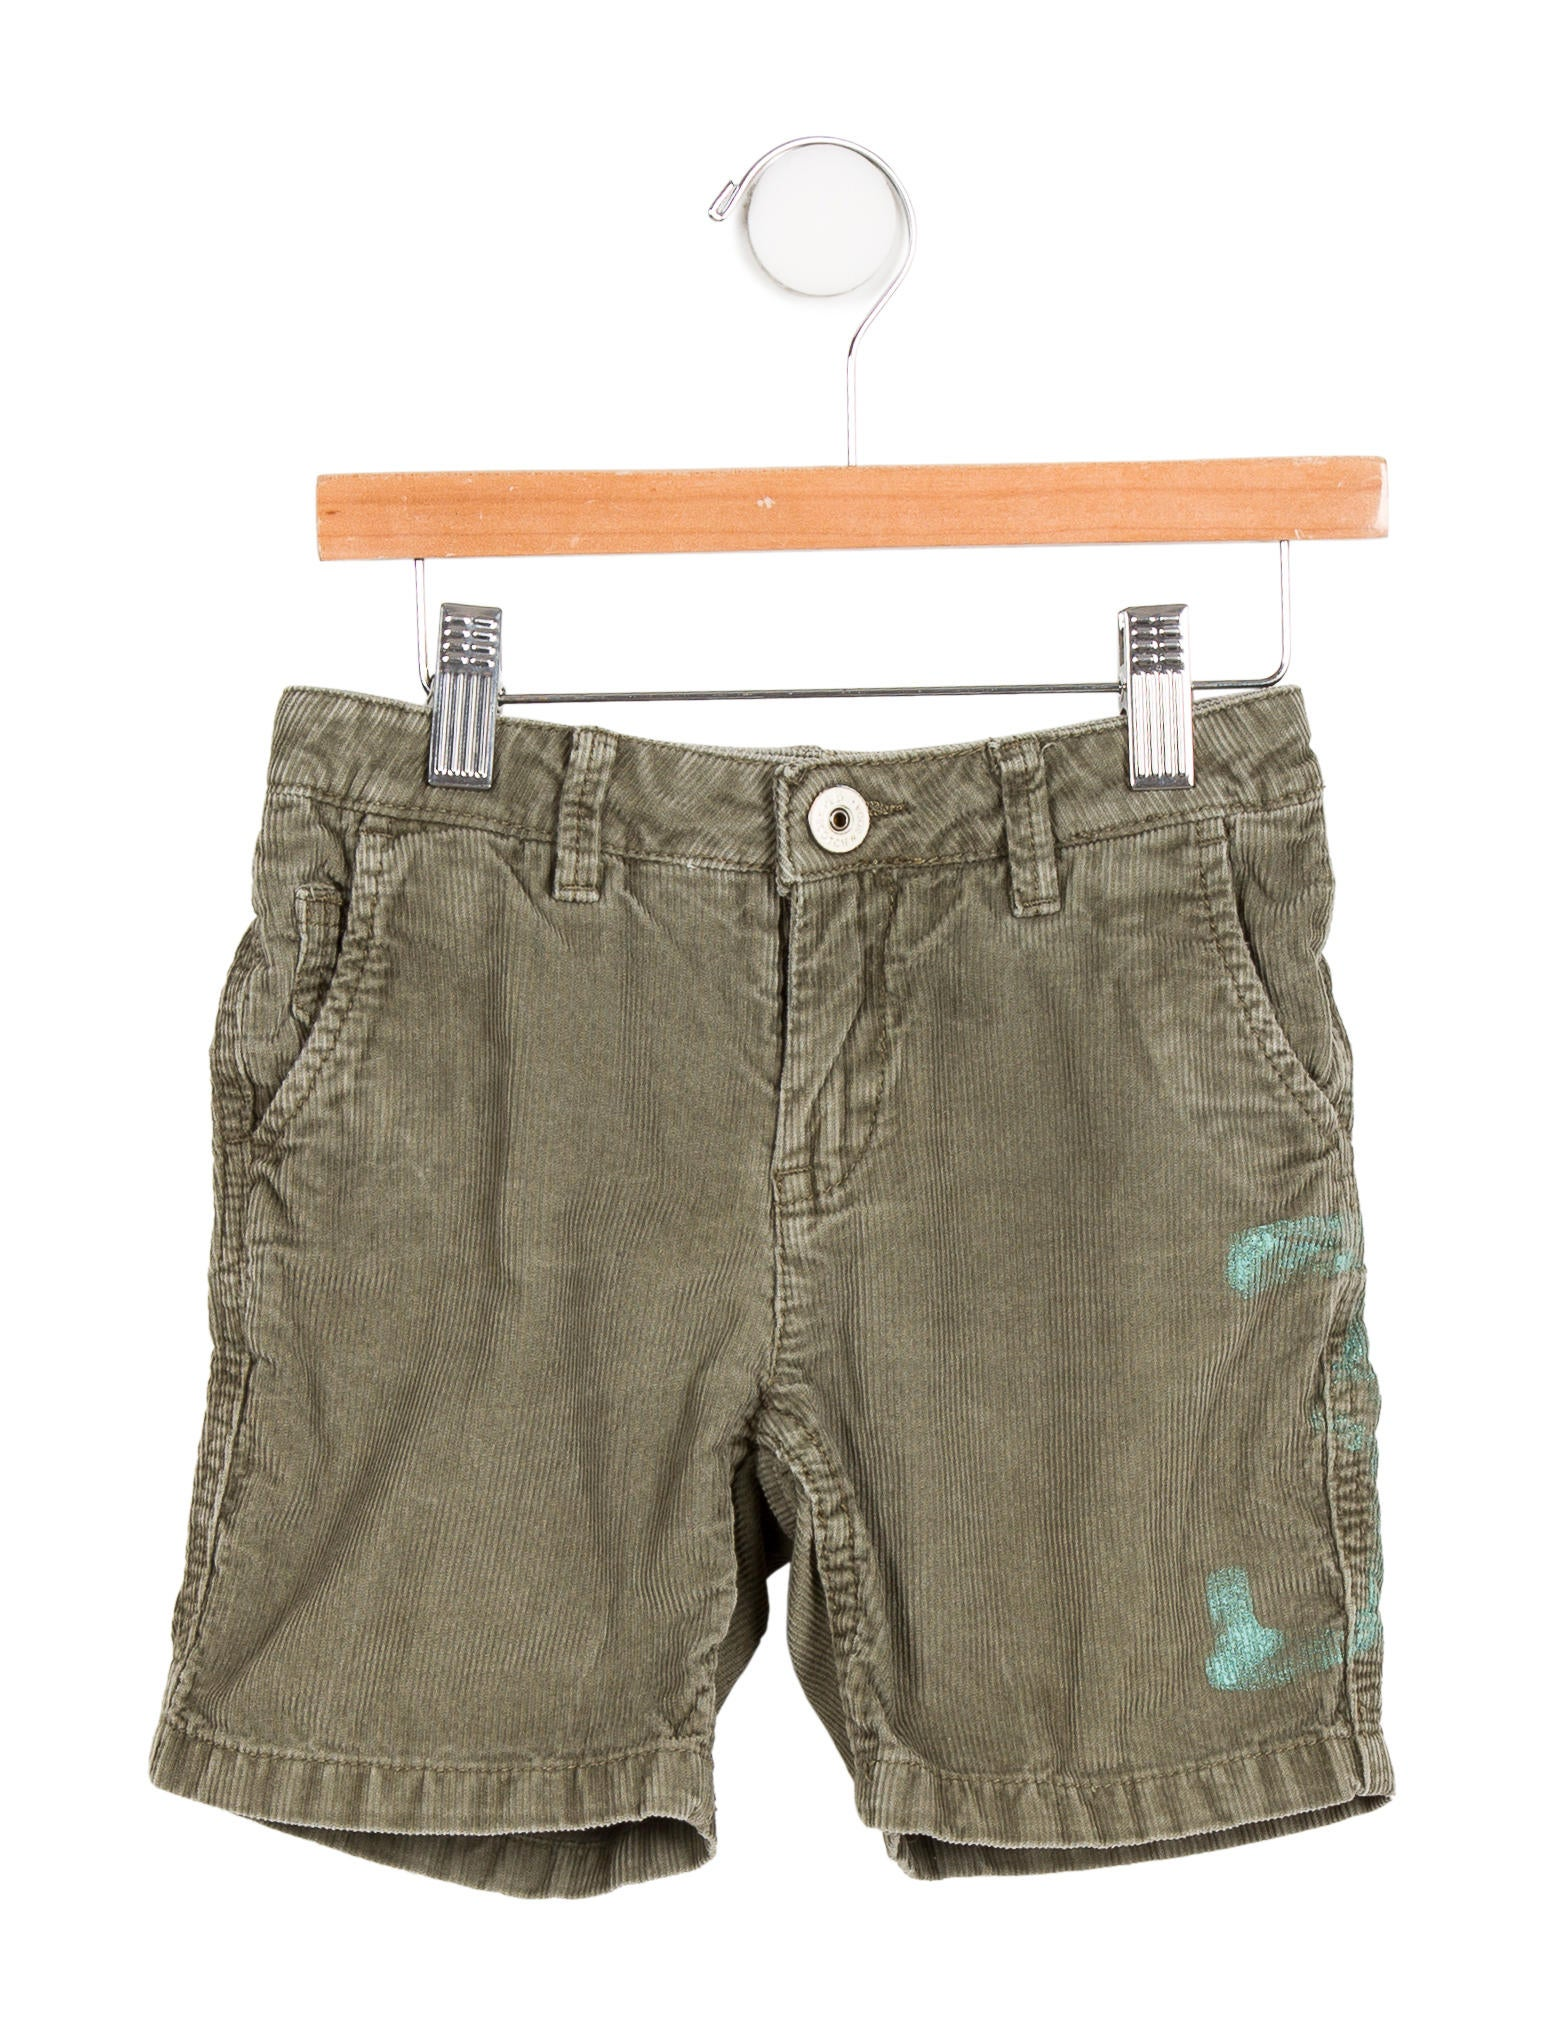 Shop for knee length swim shorts online at Target. Free shipping on purchases over $35 and save 5% every day with your Target REDcard.